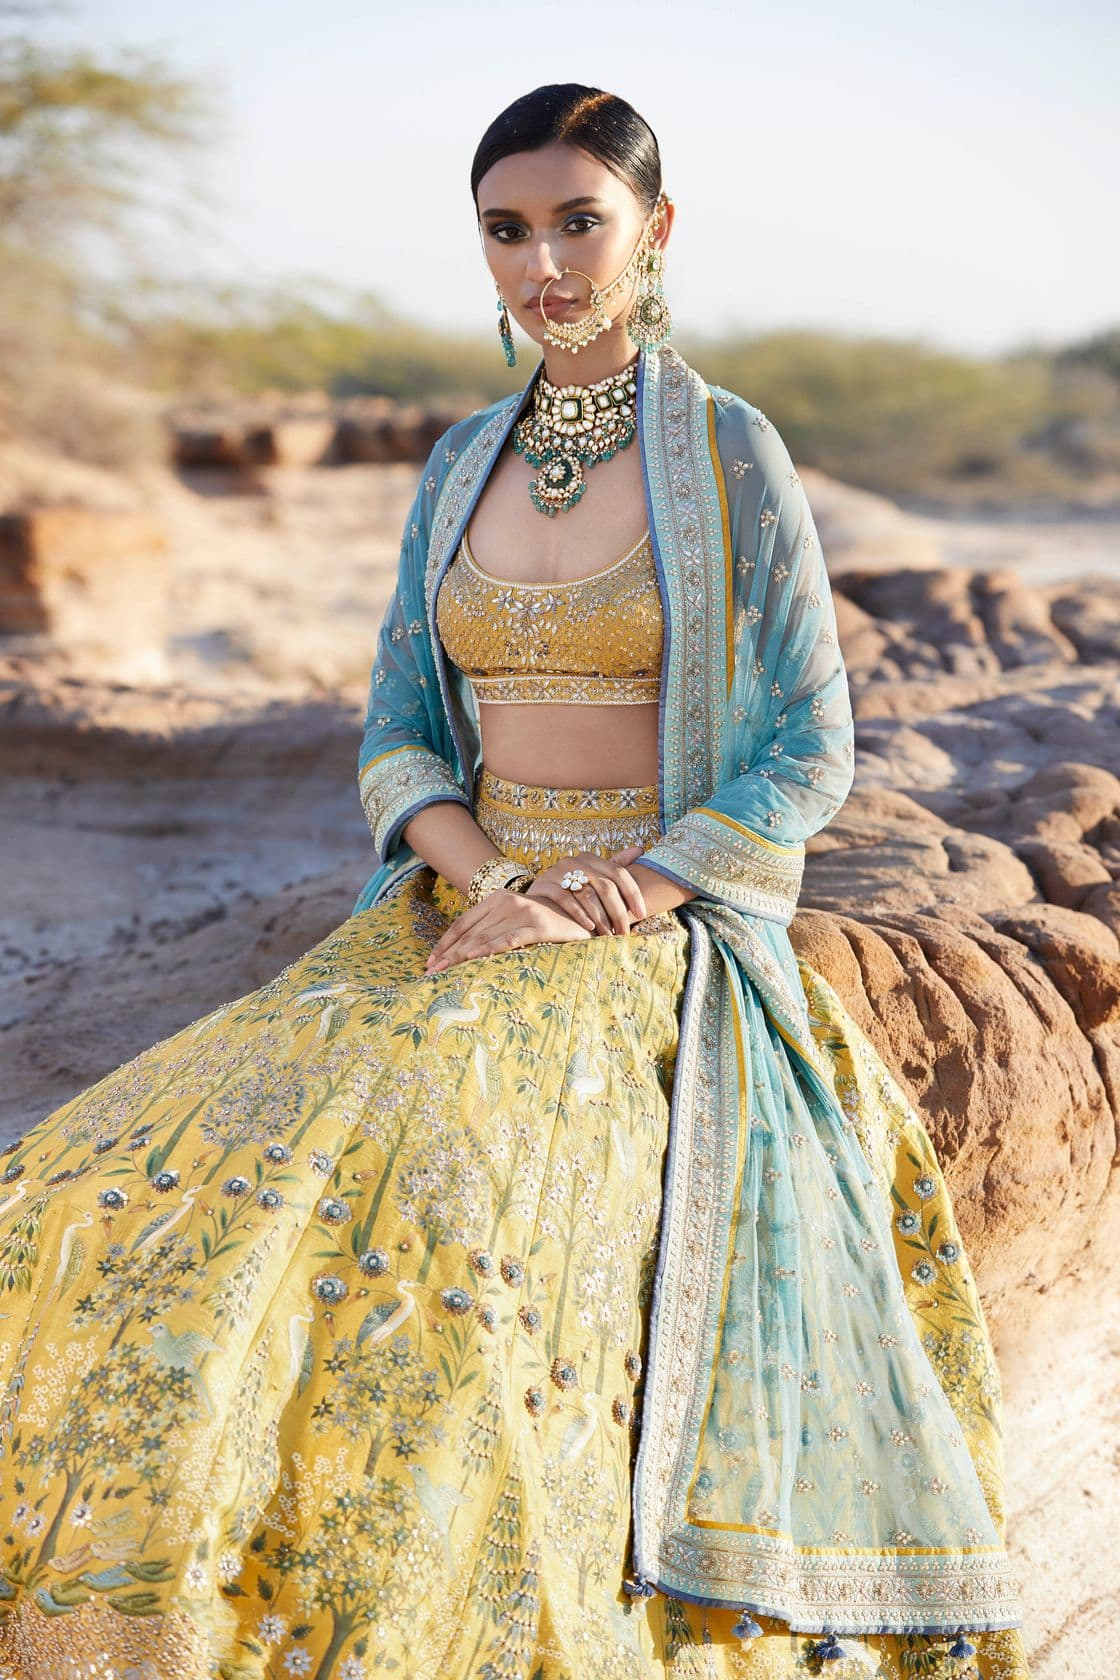 Anita Dongre's limited edition Pichwai collection has just launched